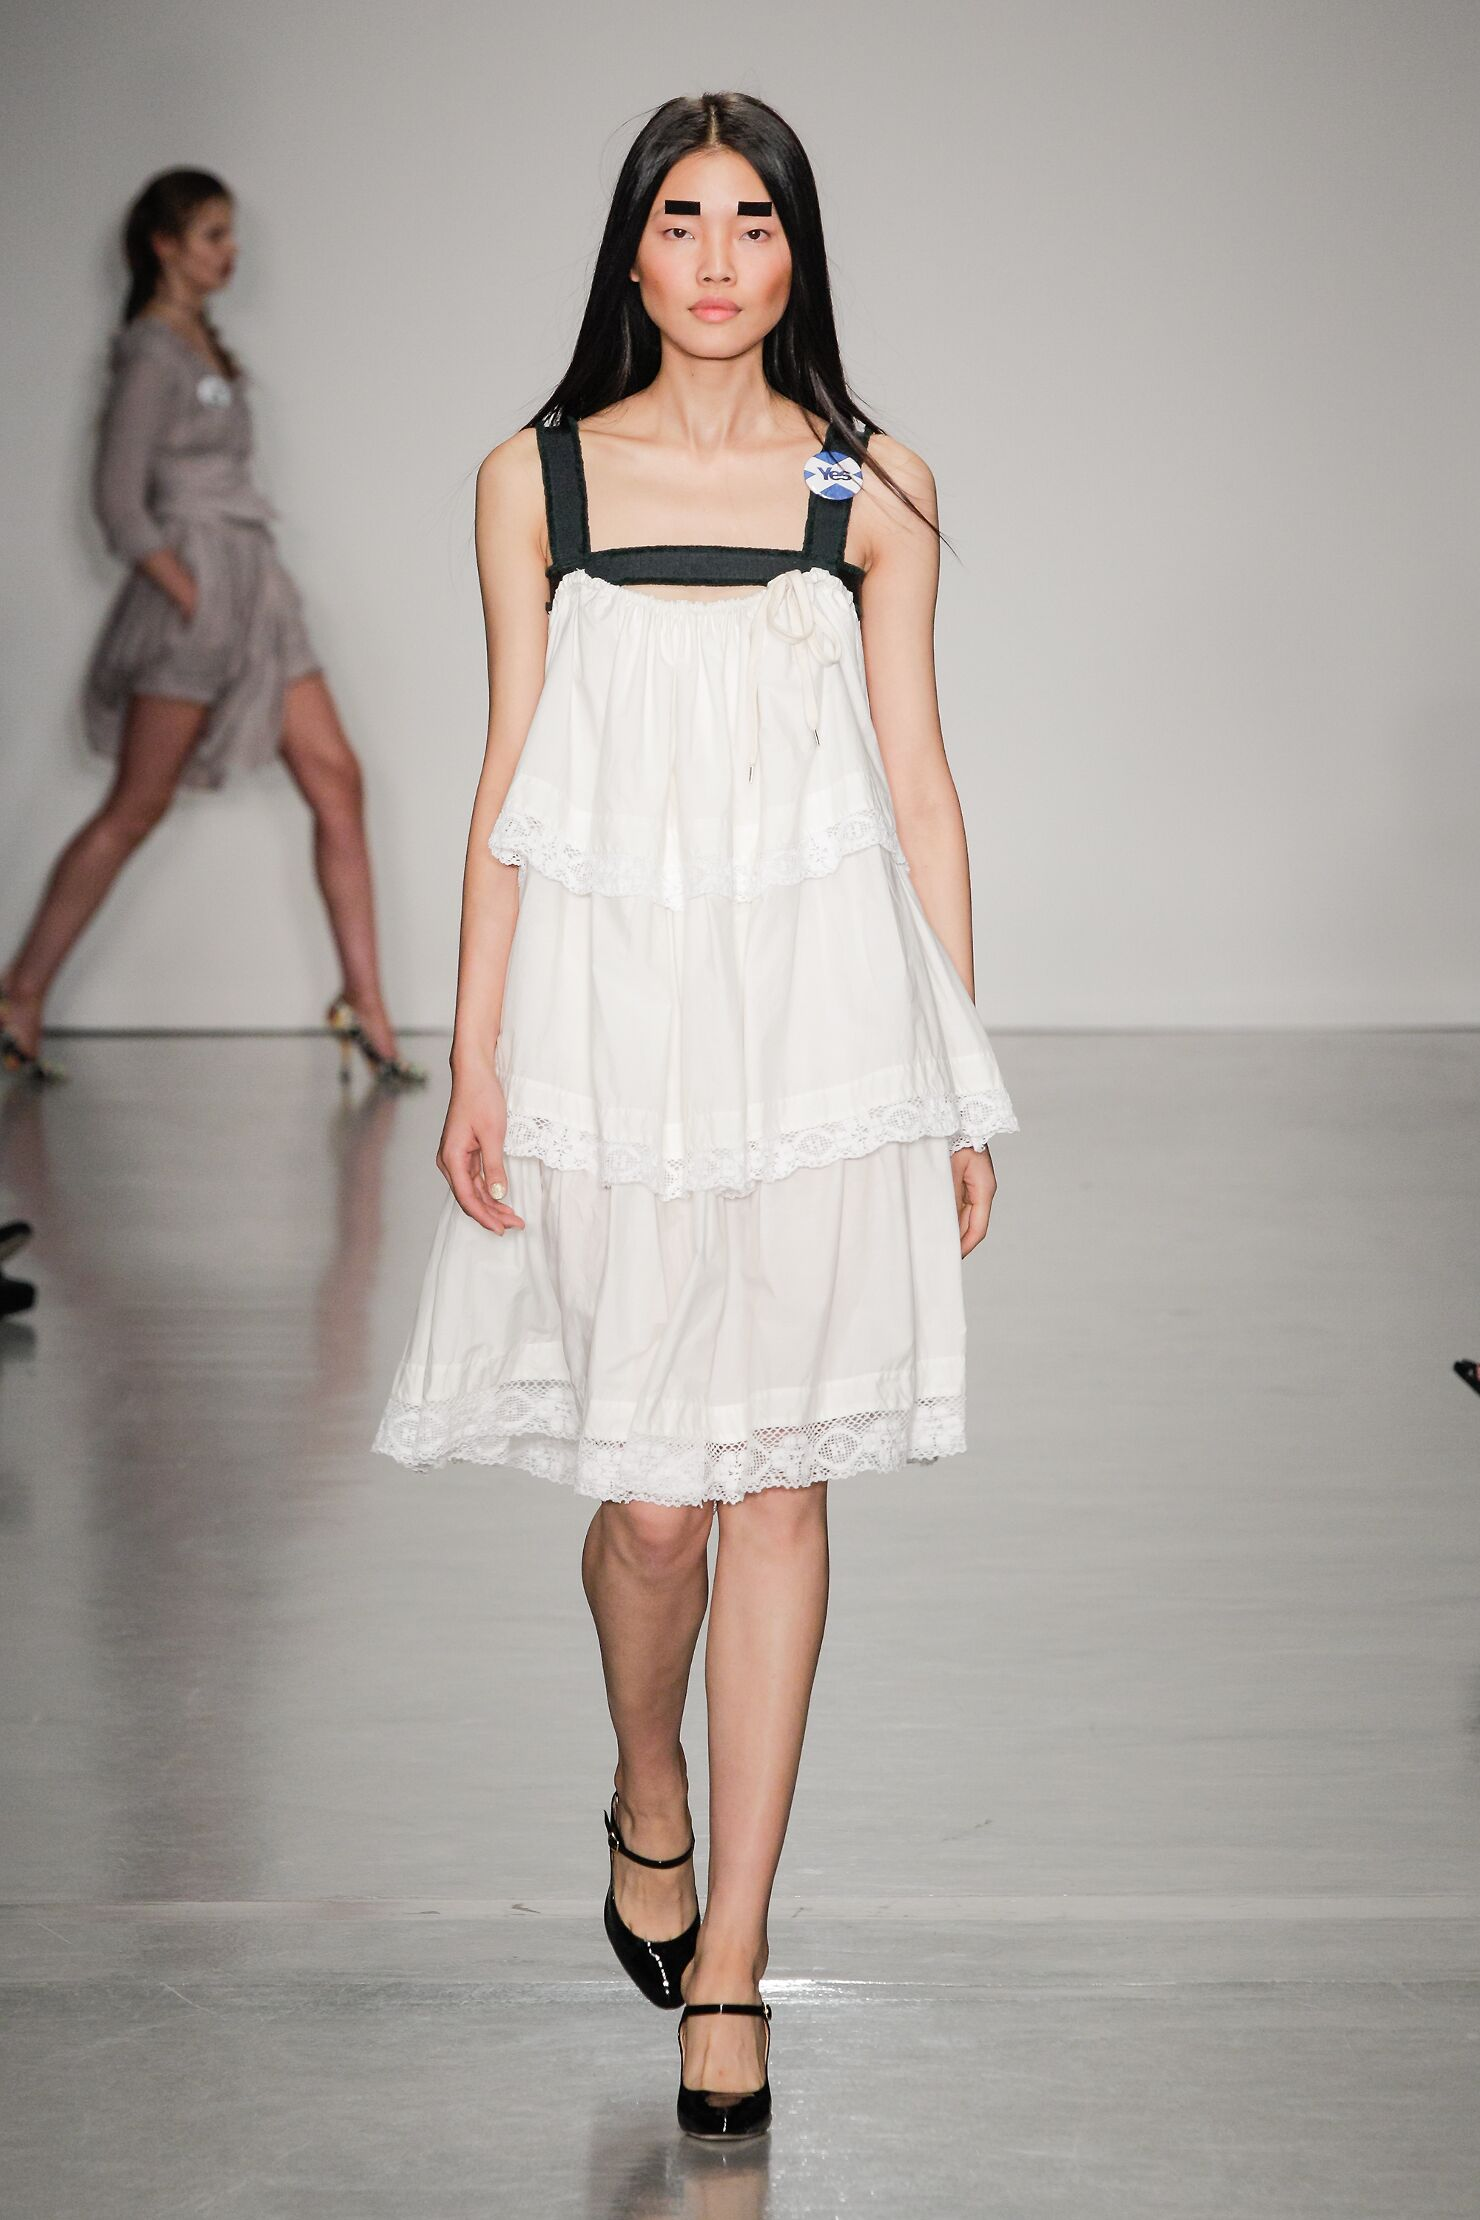 Catwalk Vivienne Westwood Red Label Summer 2015